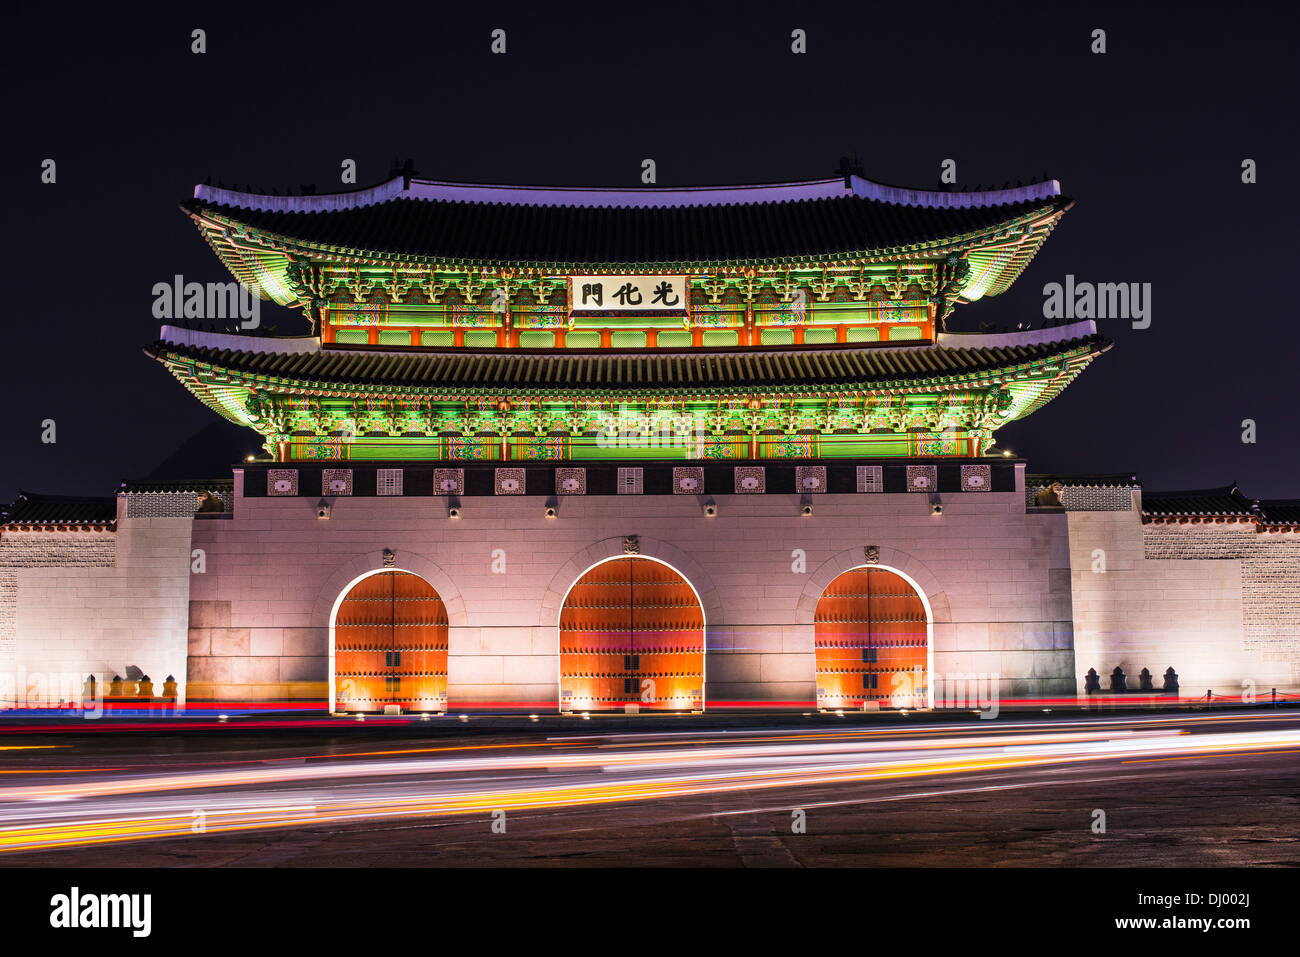 Gwanghwamun Gate is the main gate of Gyeongbokgung Palace in Seoul, South Korea. - Stock Image